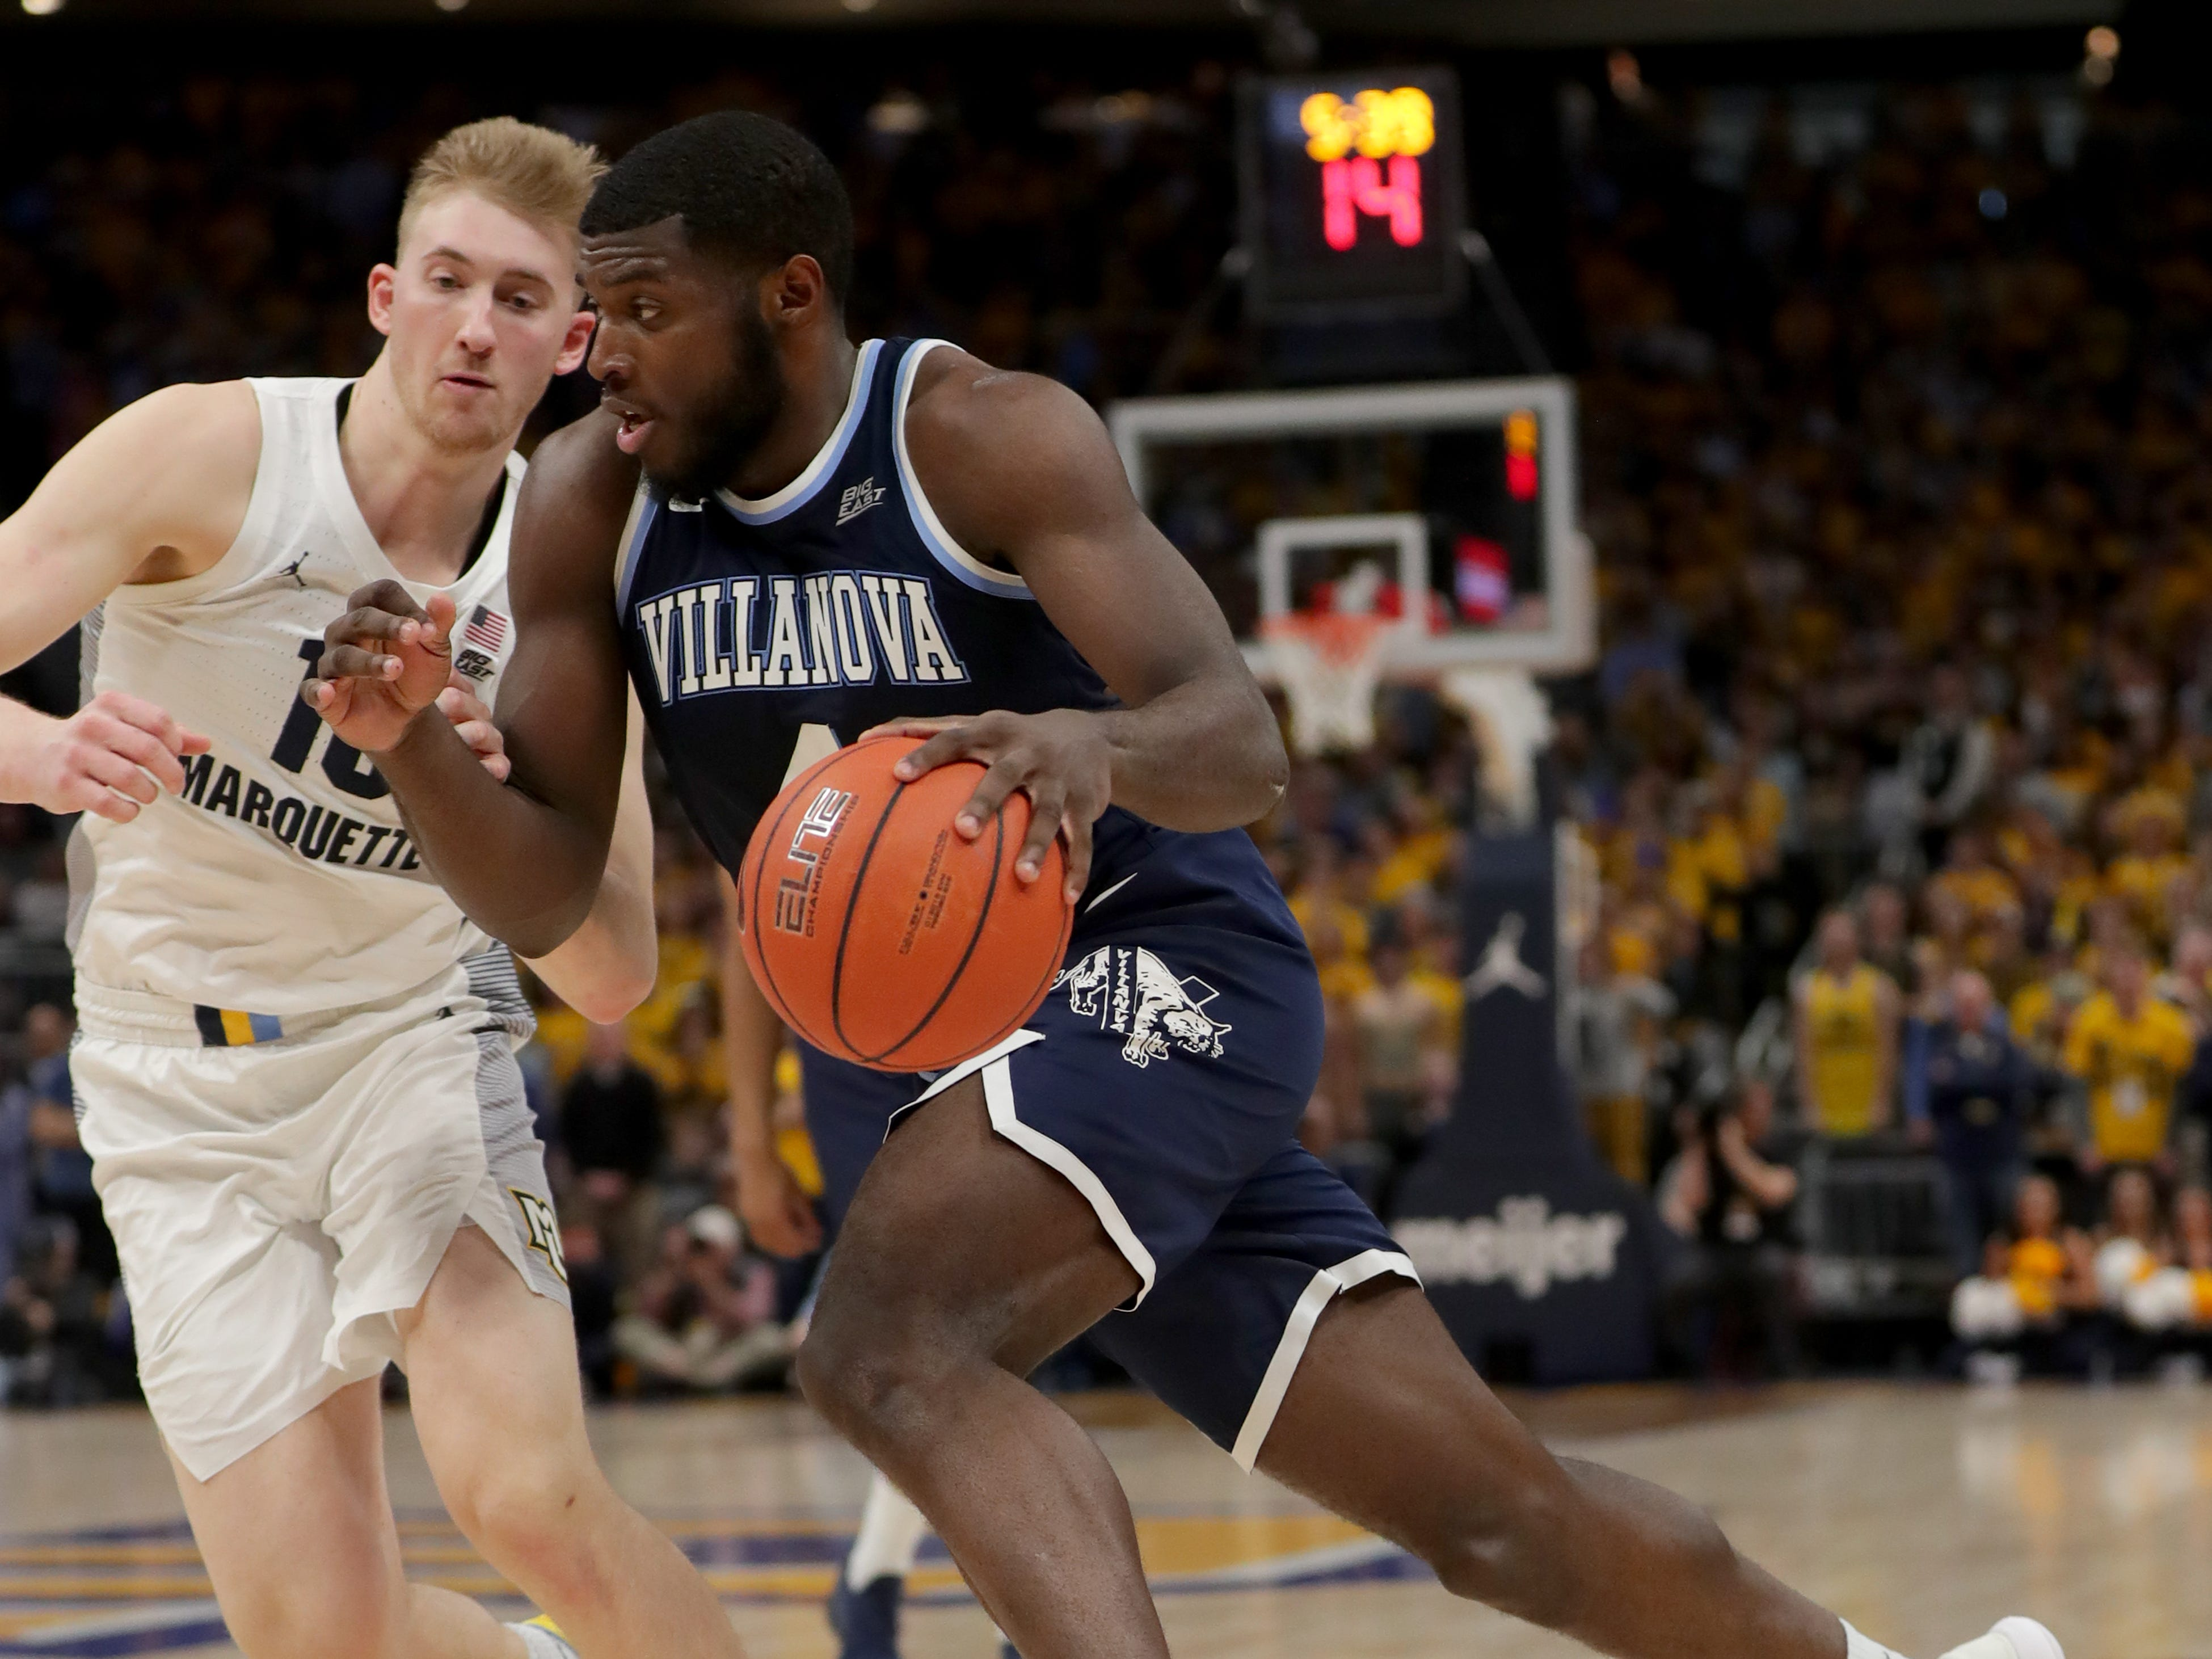 Villanova Wildcats forward Eric Paschall  drives to the basket past Marquette's Sam Hauser.